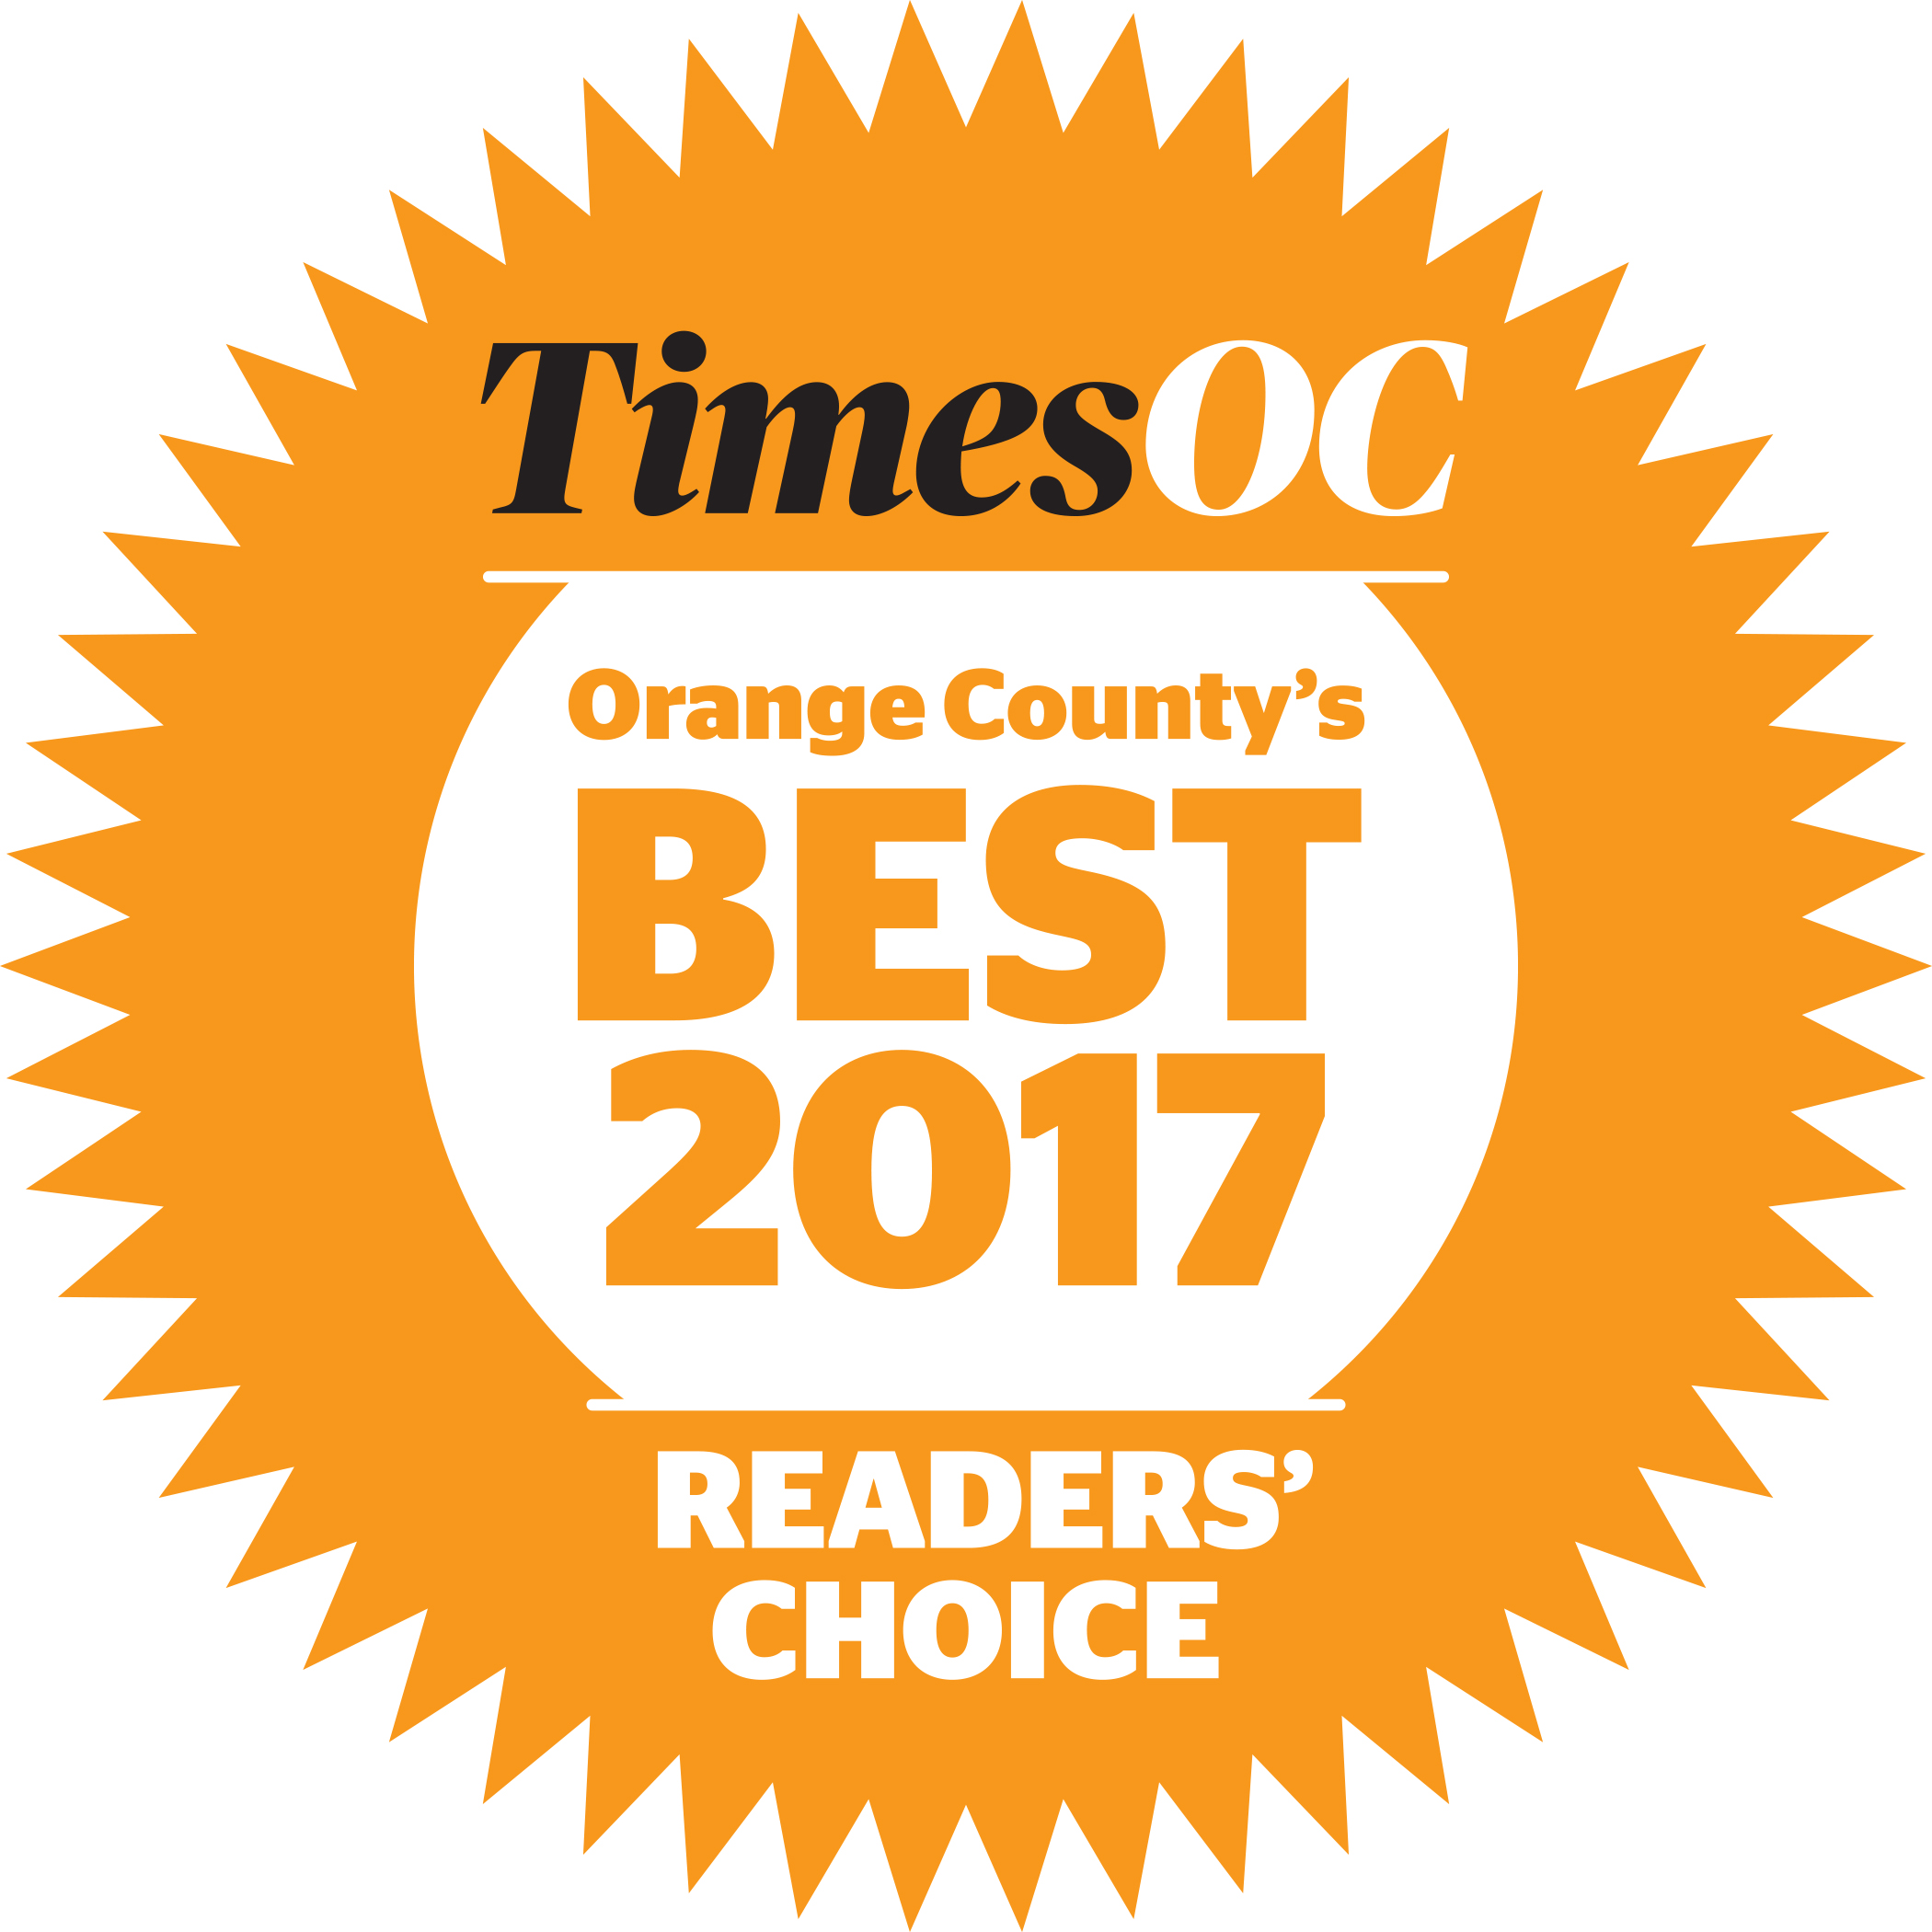 TimesOC Best2017 RGB - MARINERS ESCROW CORPORATION